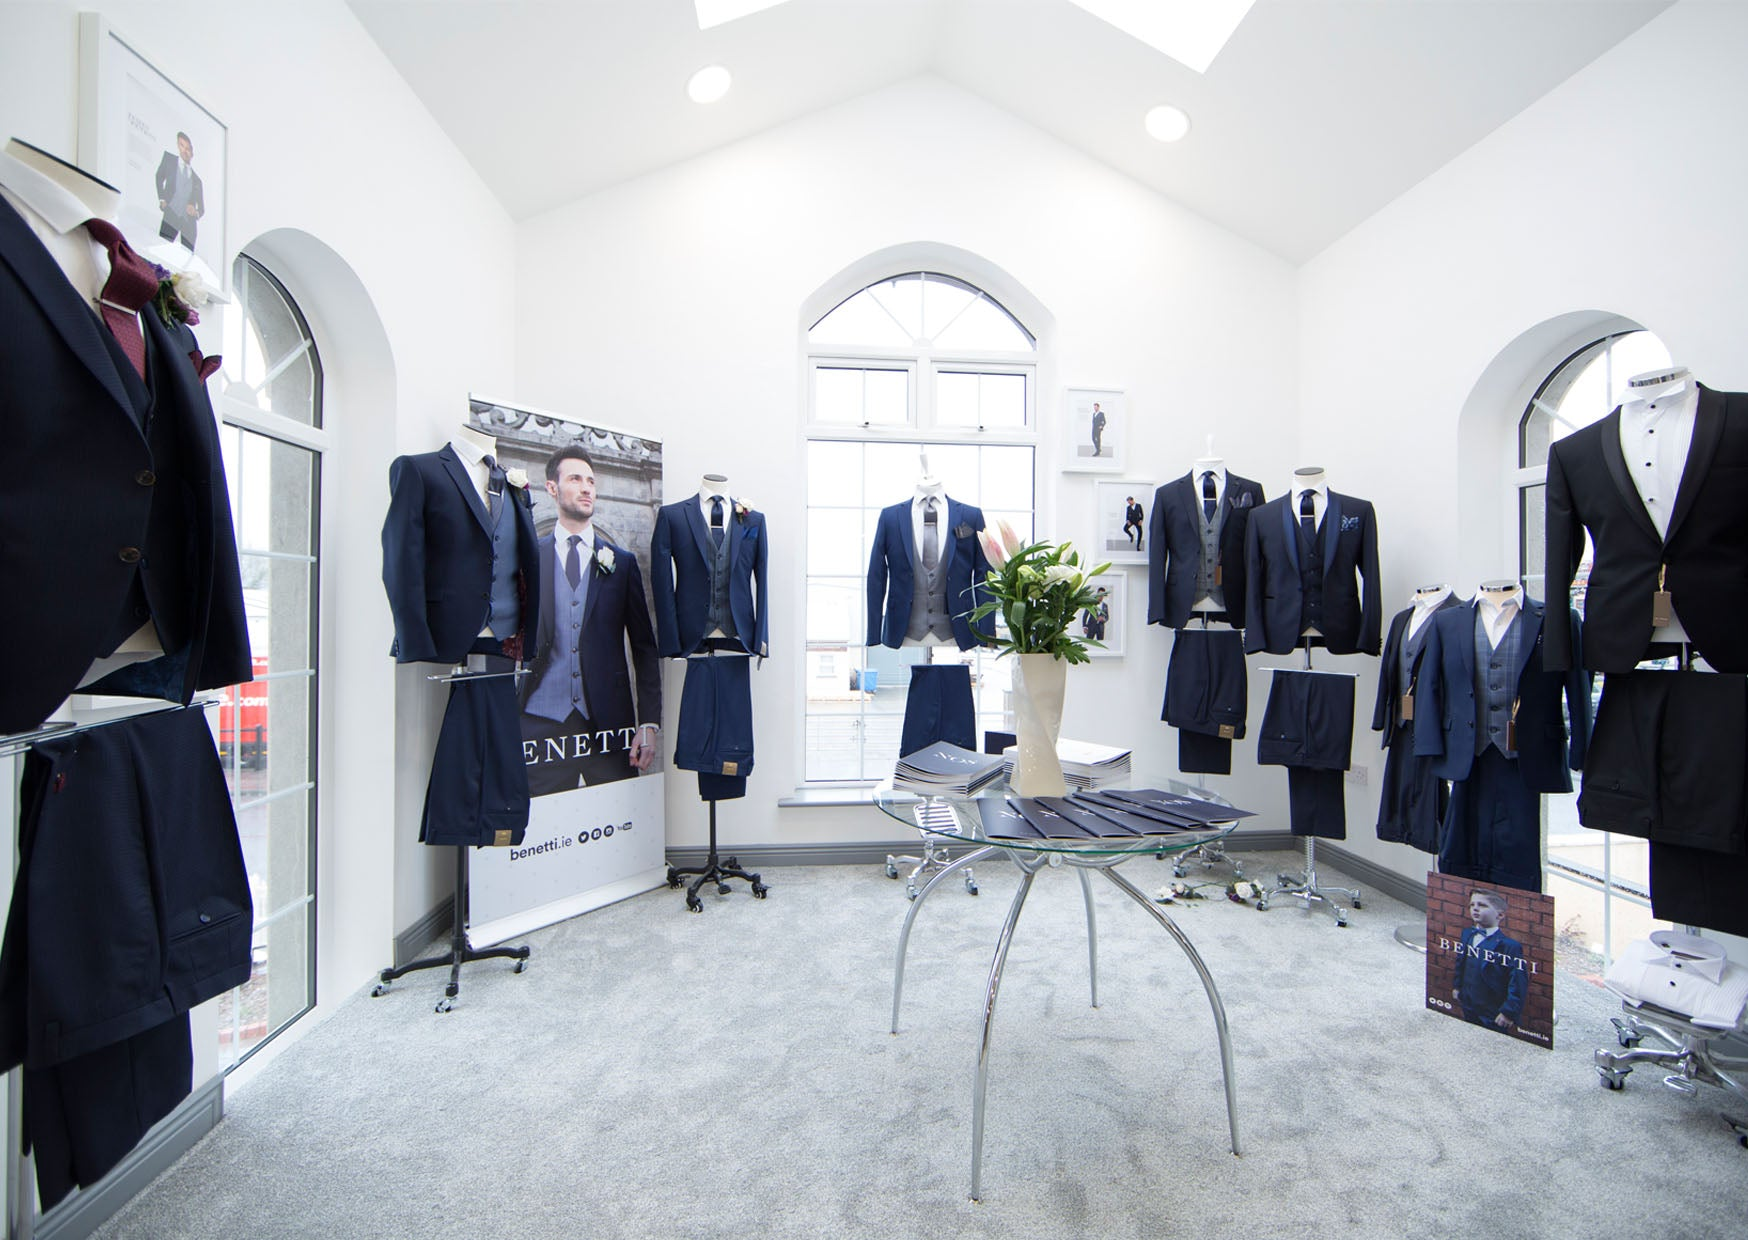 Benetti Menswear, benetti Menswear Ireland, Benetti, Menswear, Ireland, Suits, Showroom, Wedding Suits